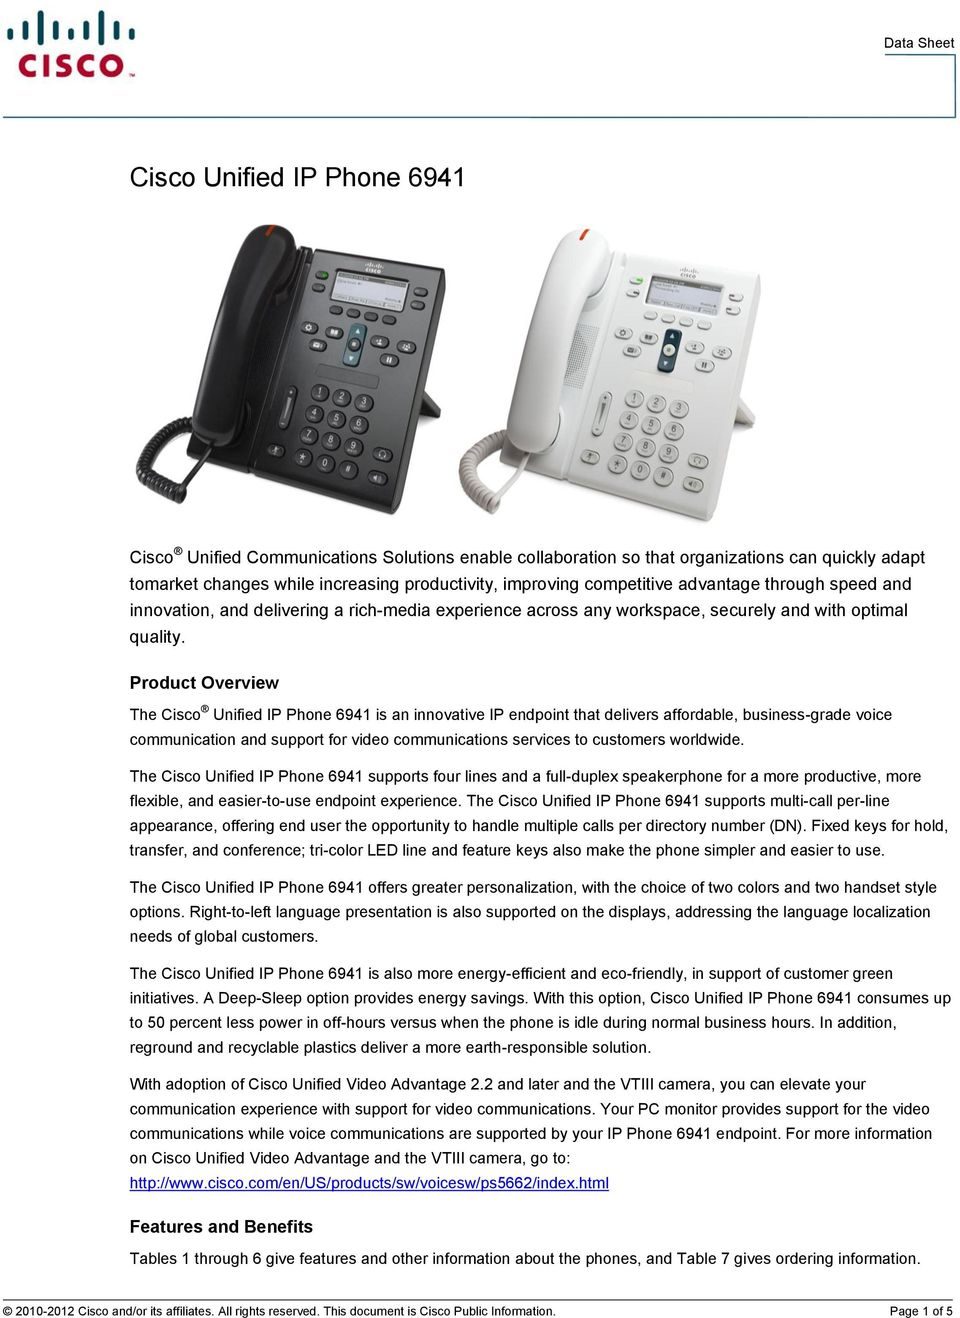 Product Overview The Cisco Unified IP Phone 6941 is an innovative IP endpoint that delivers affordable, business-grade voice communication and support for video communications services to customers